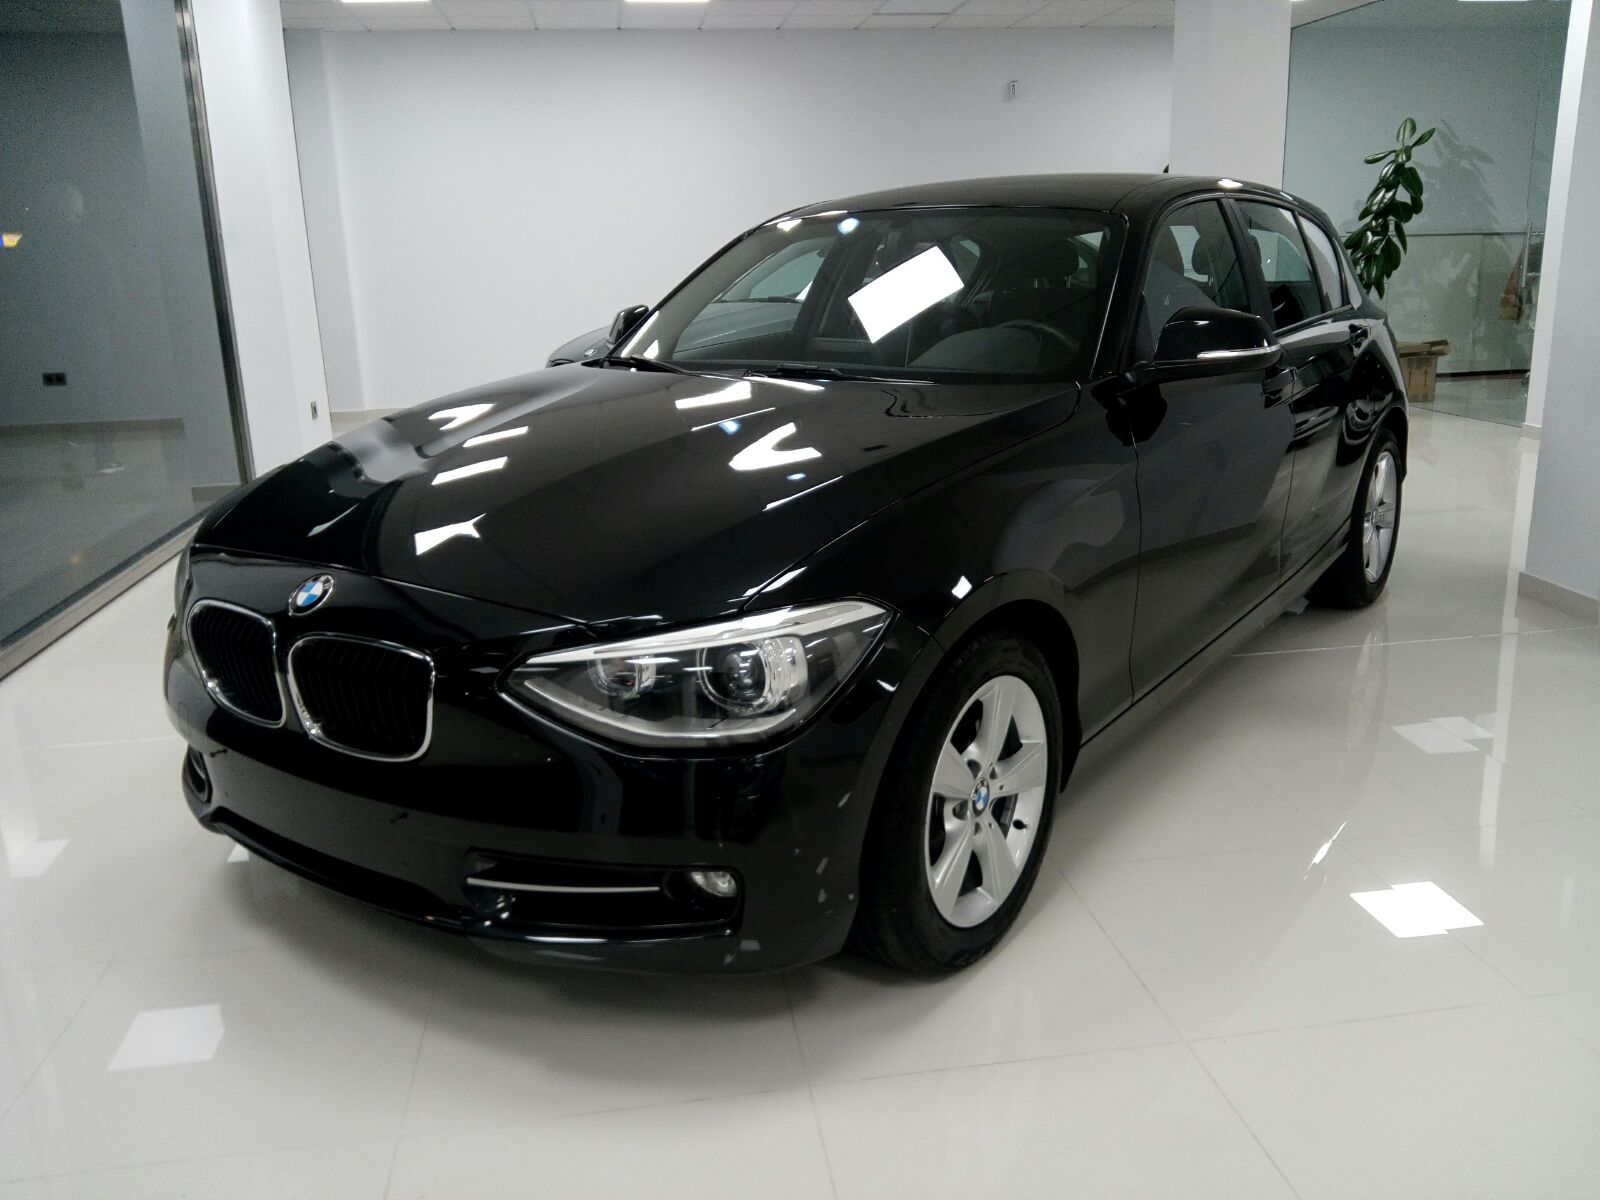 02 bmw serie 1 116d f20 efficientdynamics edition 2013 cofermotor turbo nuevo turbo reparado. Black Bedroom Furniture Sets. Home Design Ideas